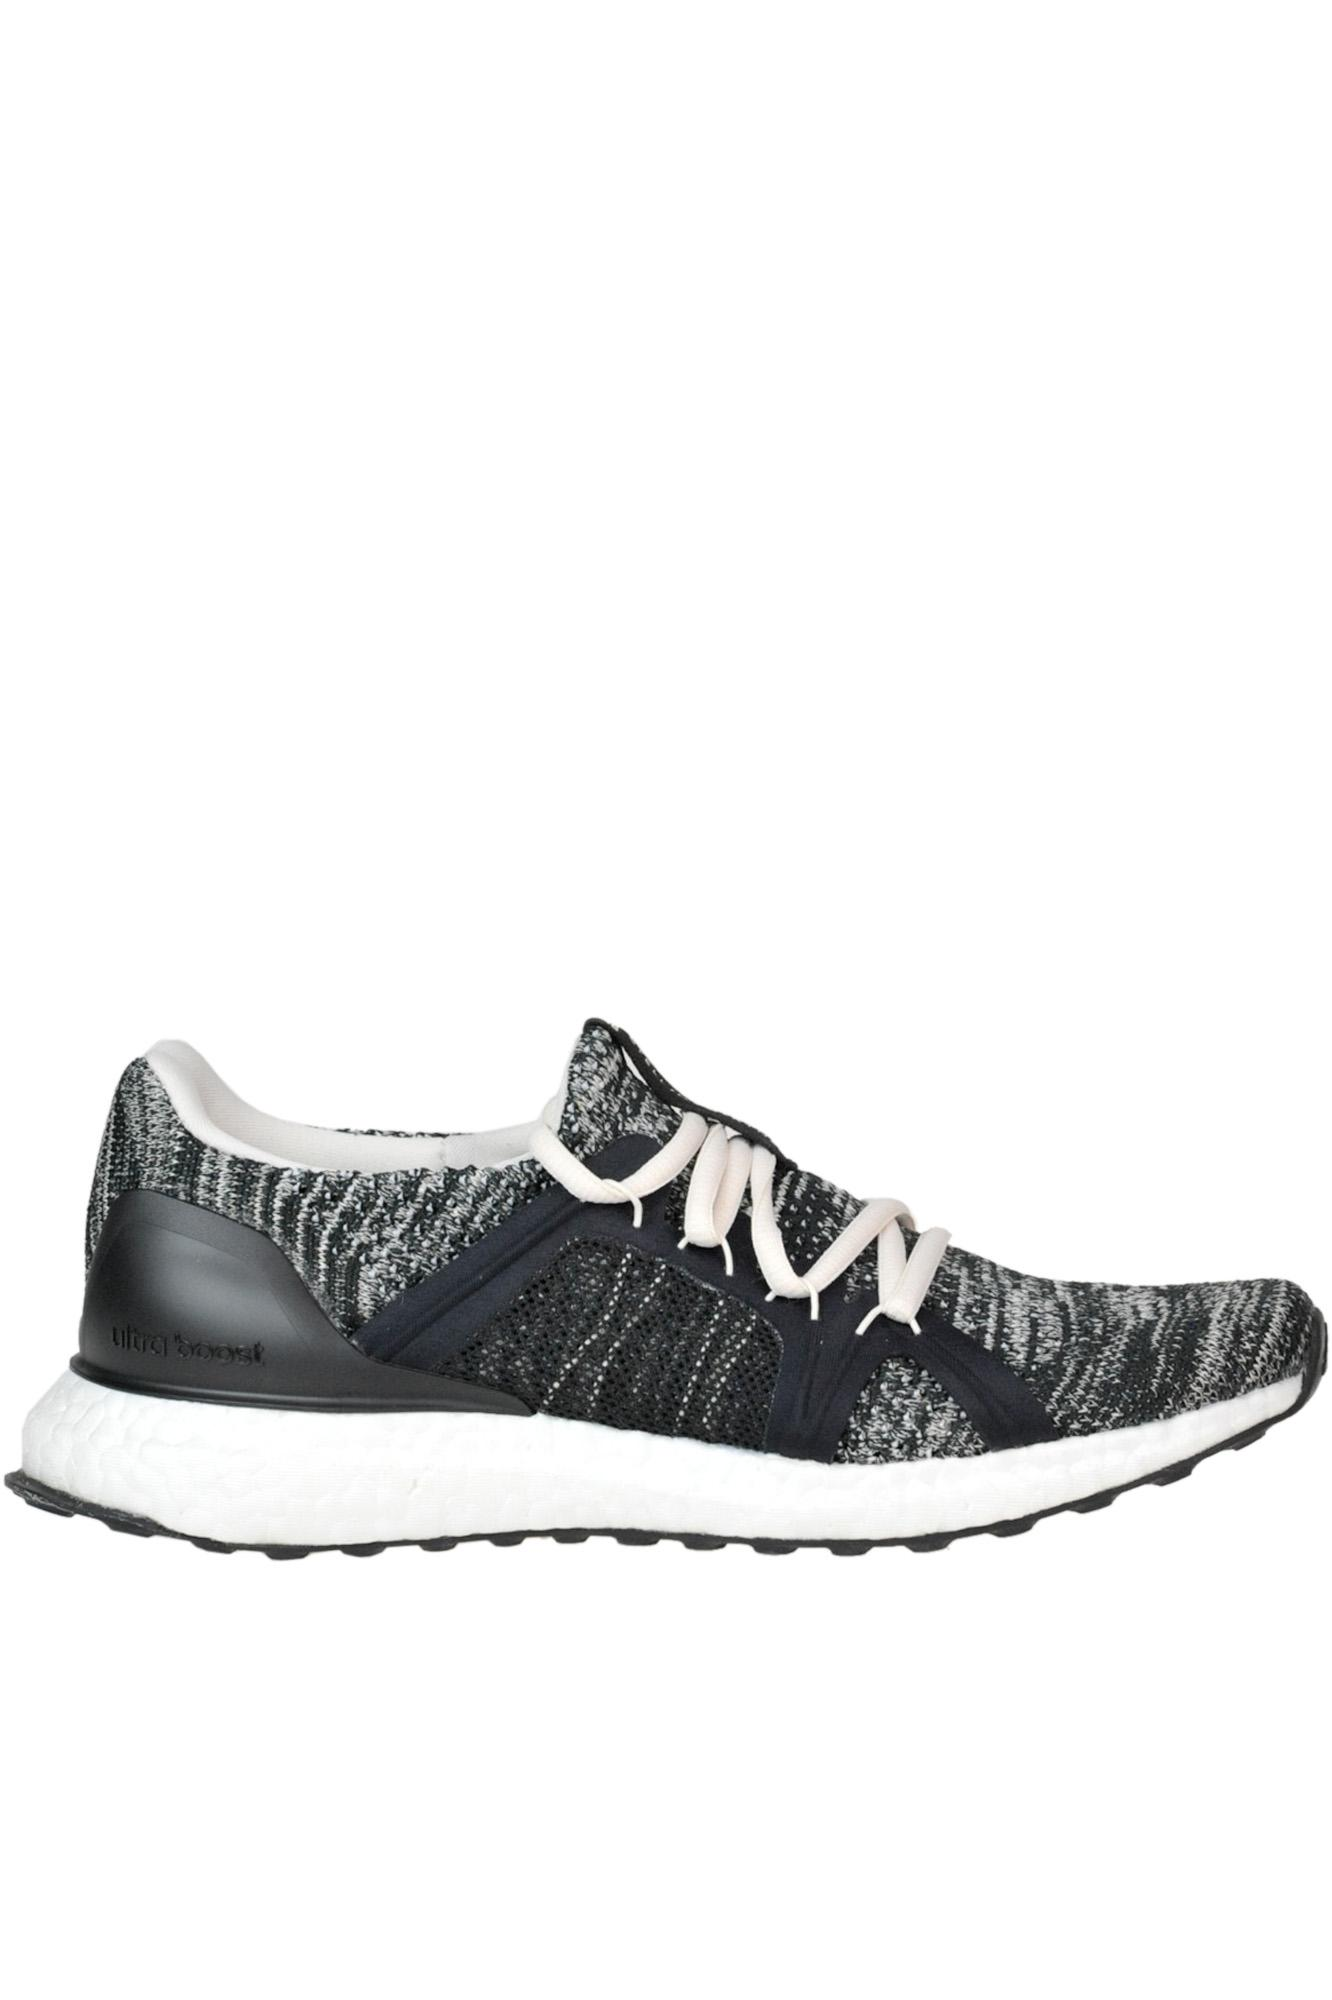 3c0a41dc9 adidas By Stella McCartney  ultraboost Parley  Sneakers in Black - Lyst